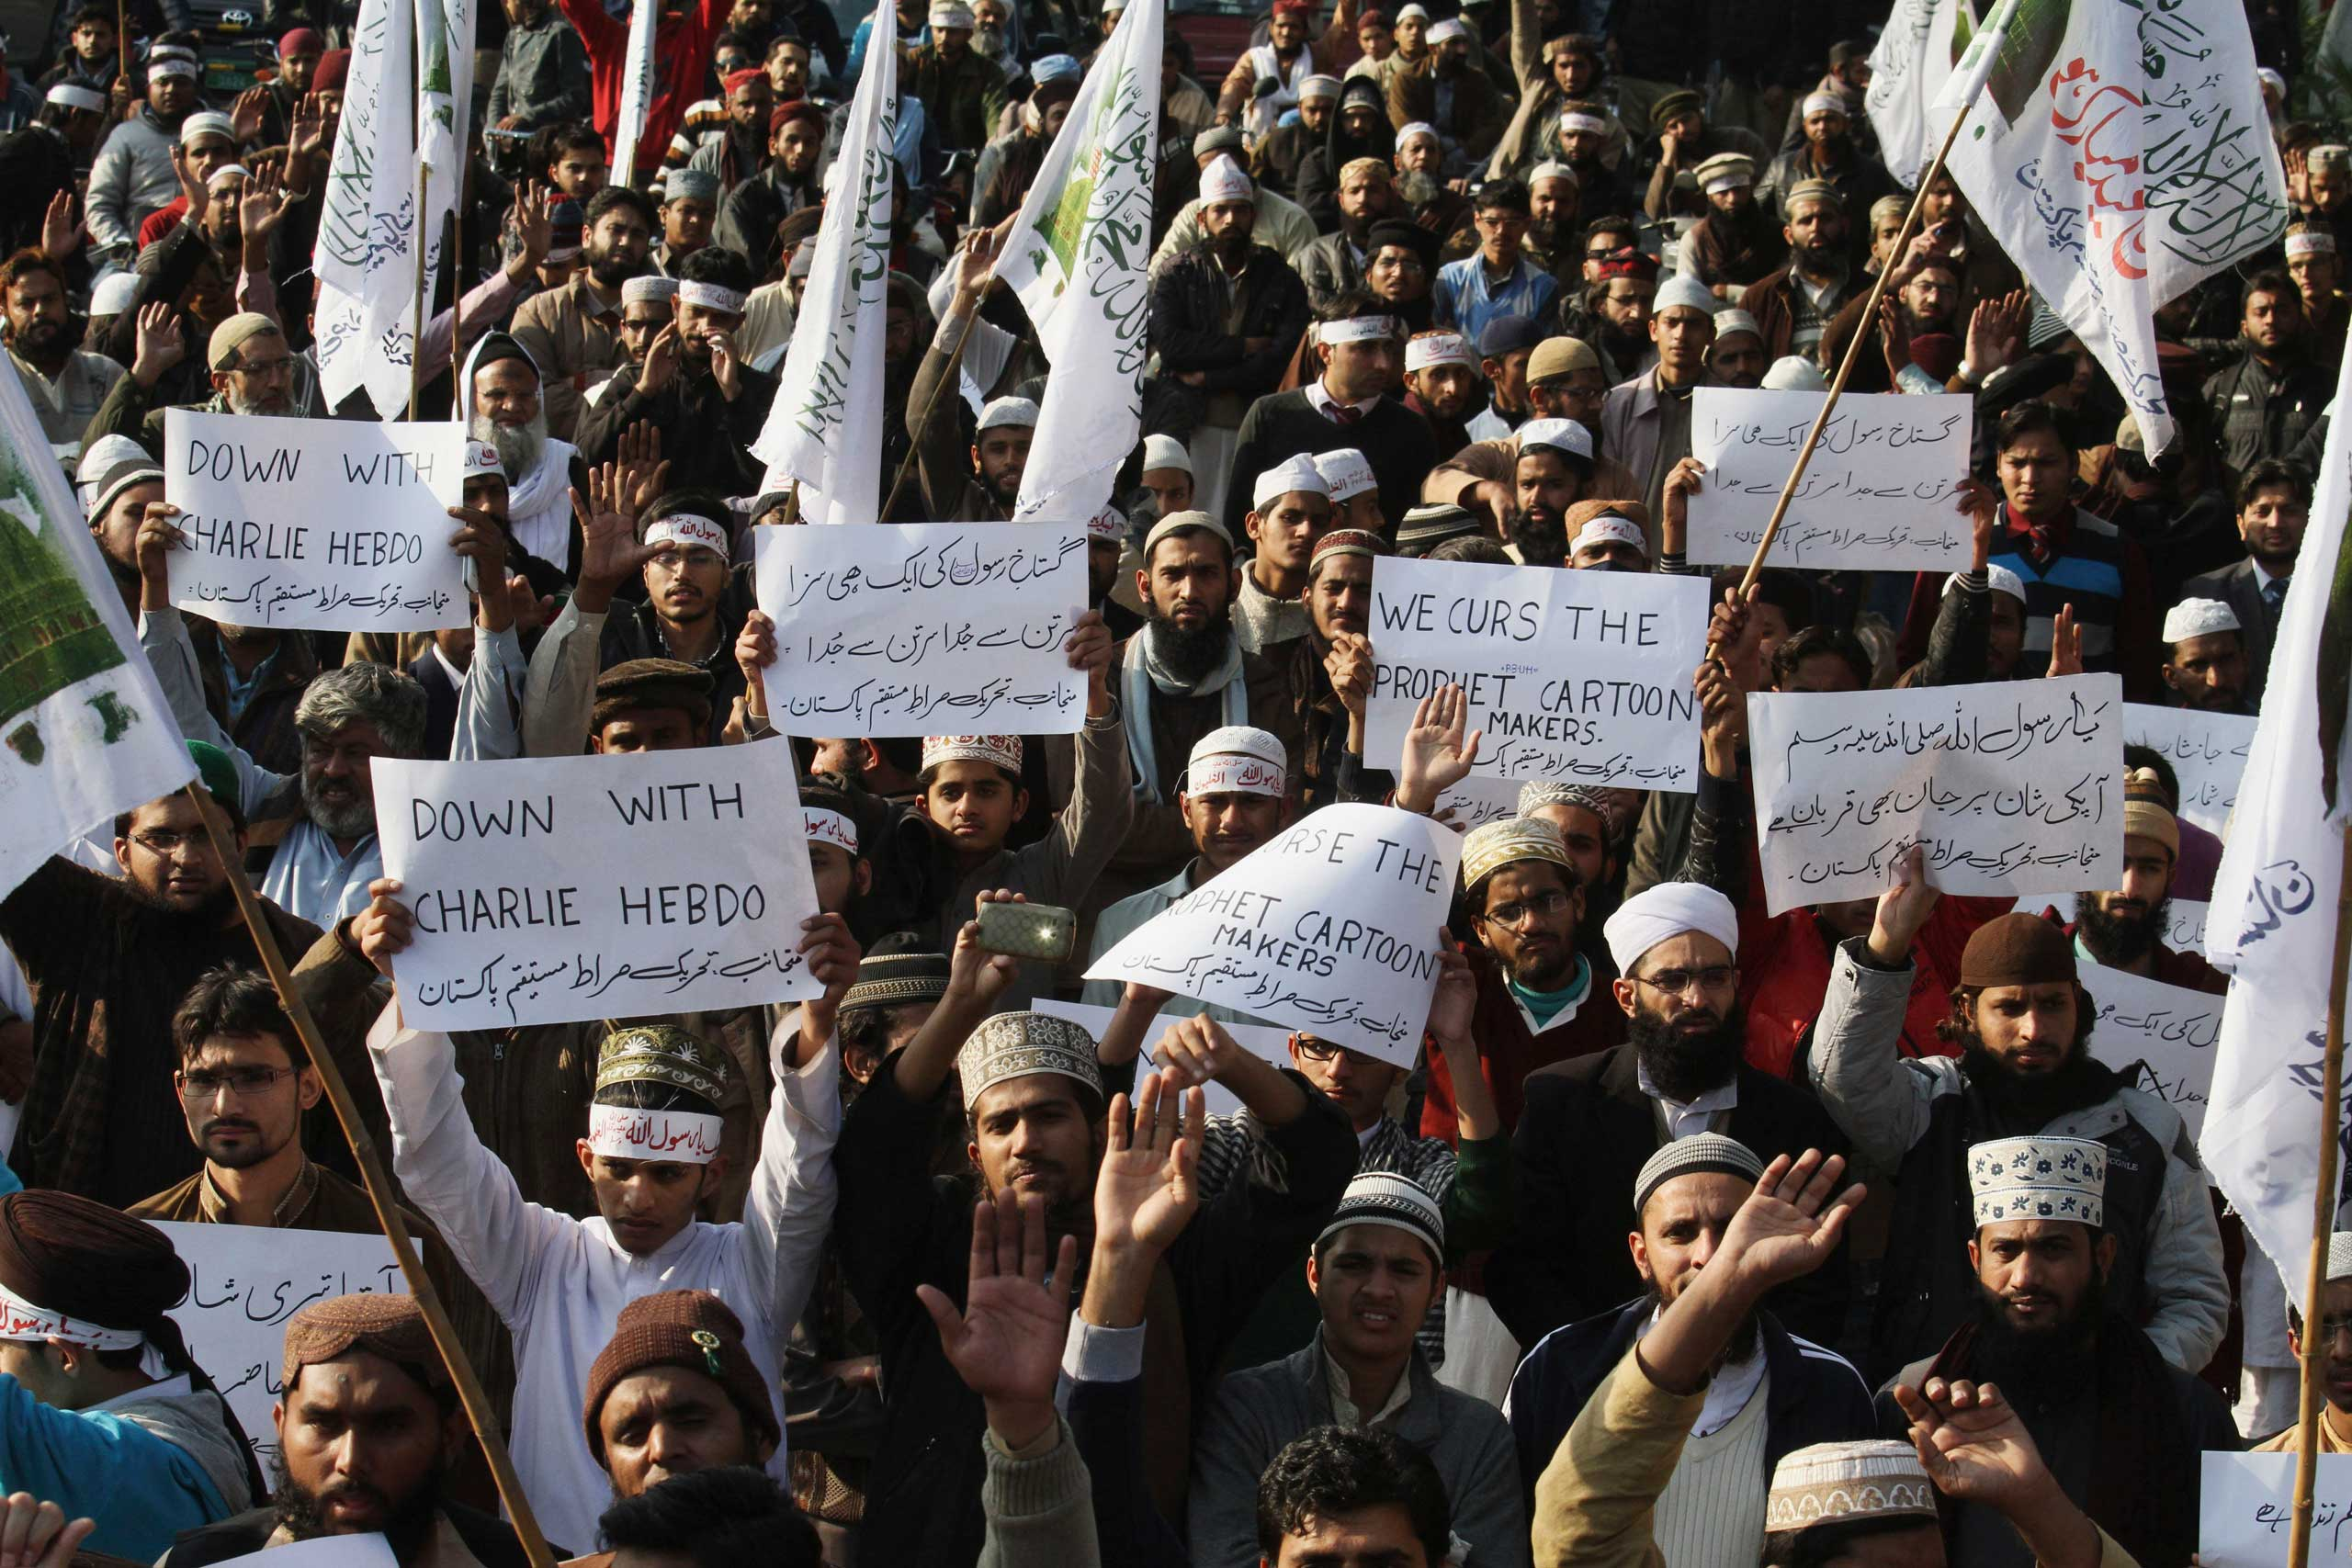 Supporters of a Pakistani religious group rally to protest against caricatures published in the French magazine Charlie Hebdo, in Lahore, Pakistan on  Jan. 15, 2015.